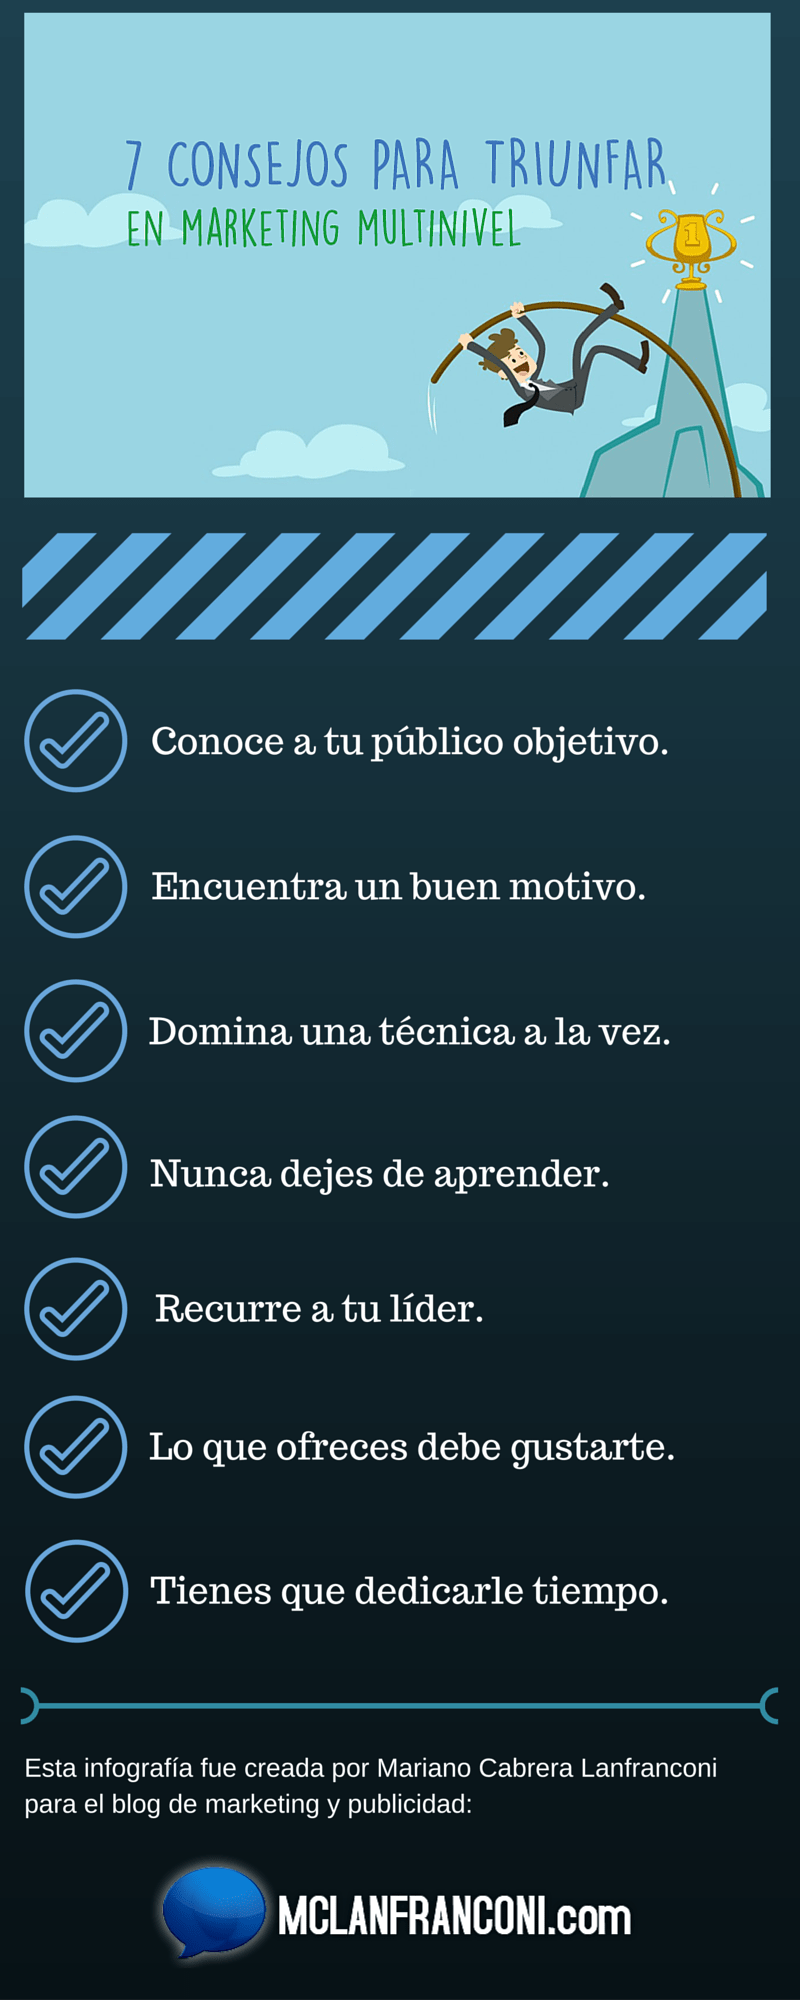 infografia 7 consejos para triunfar con marketing multinivel